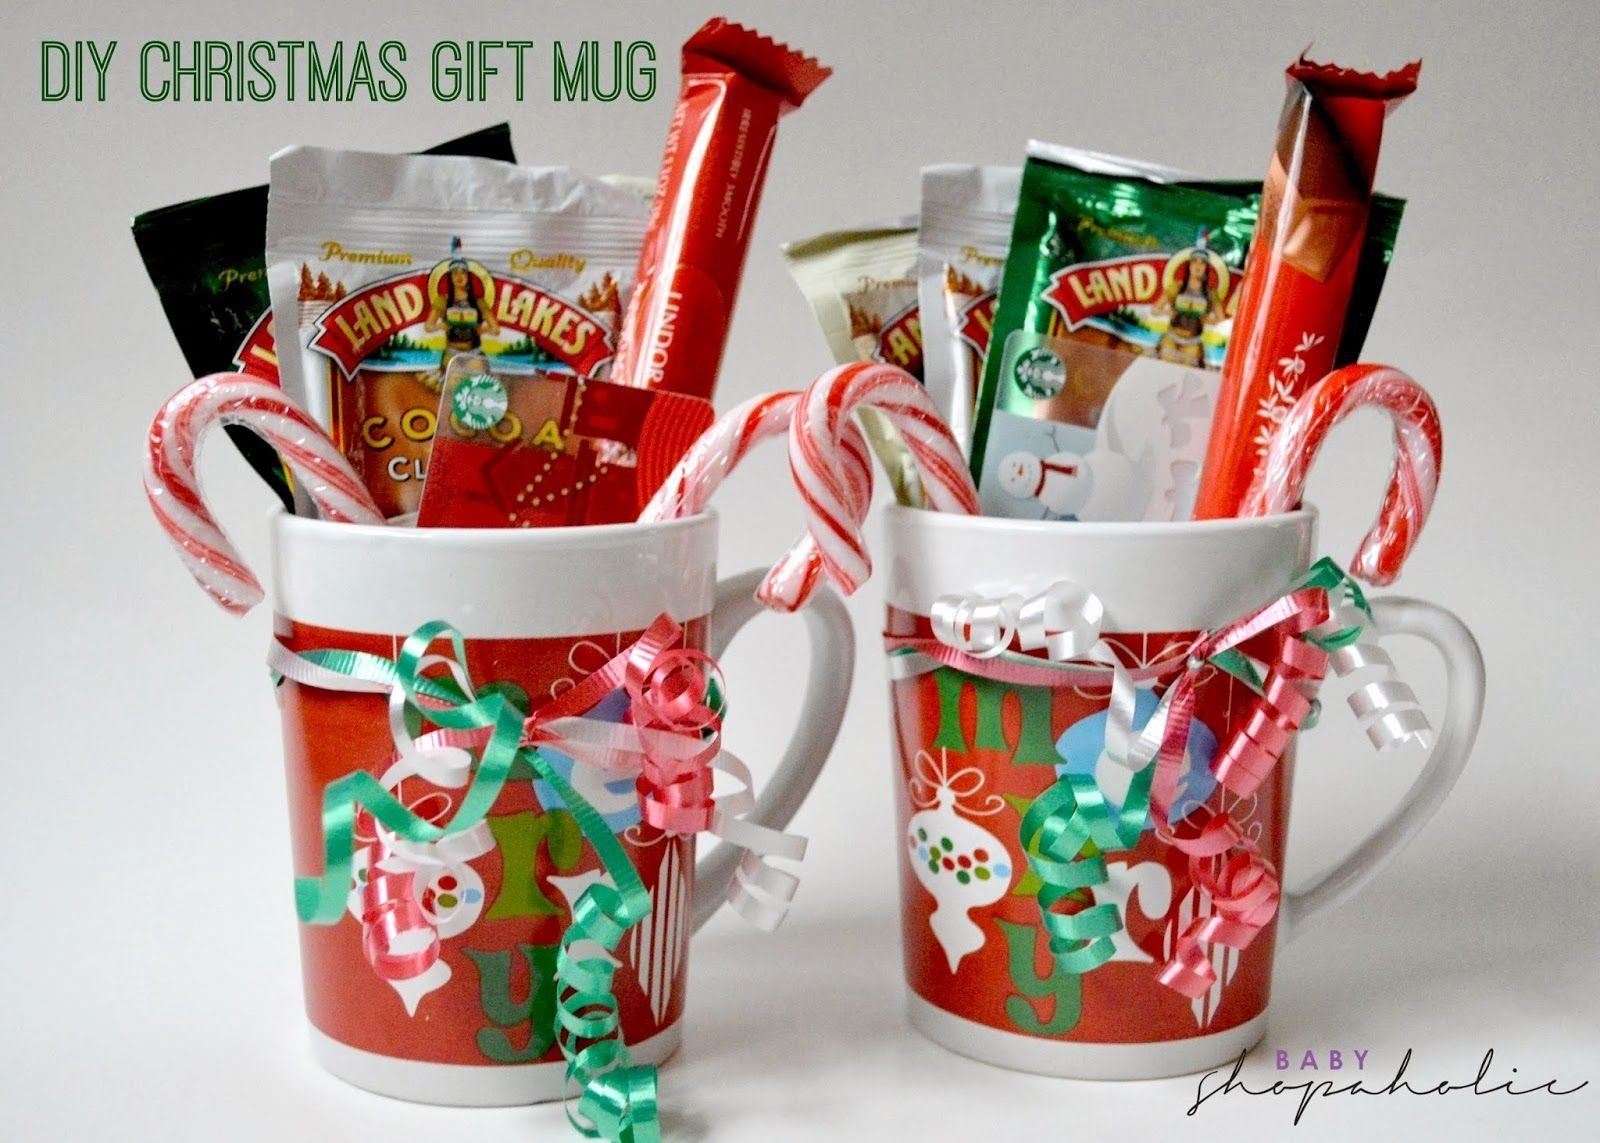 10 perfect cheap christmas gift ideas for coworkers baby shopaholic last minute diy christmas gift christmas - Homemade Christmas Gifts For Coworkers